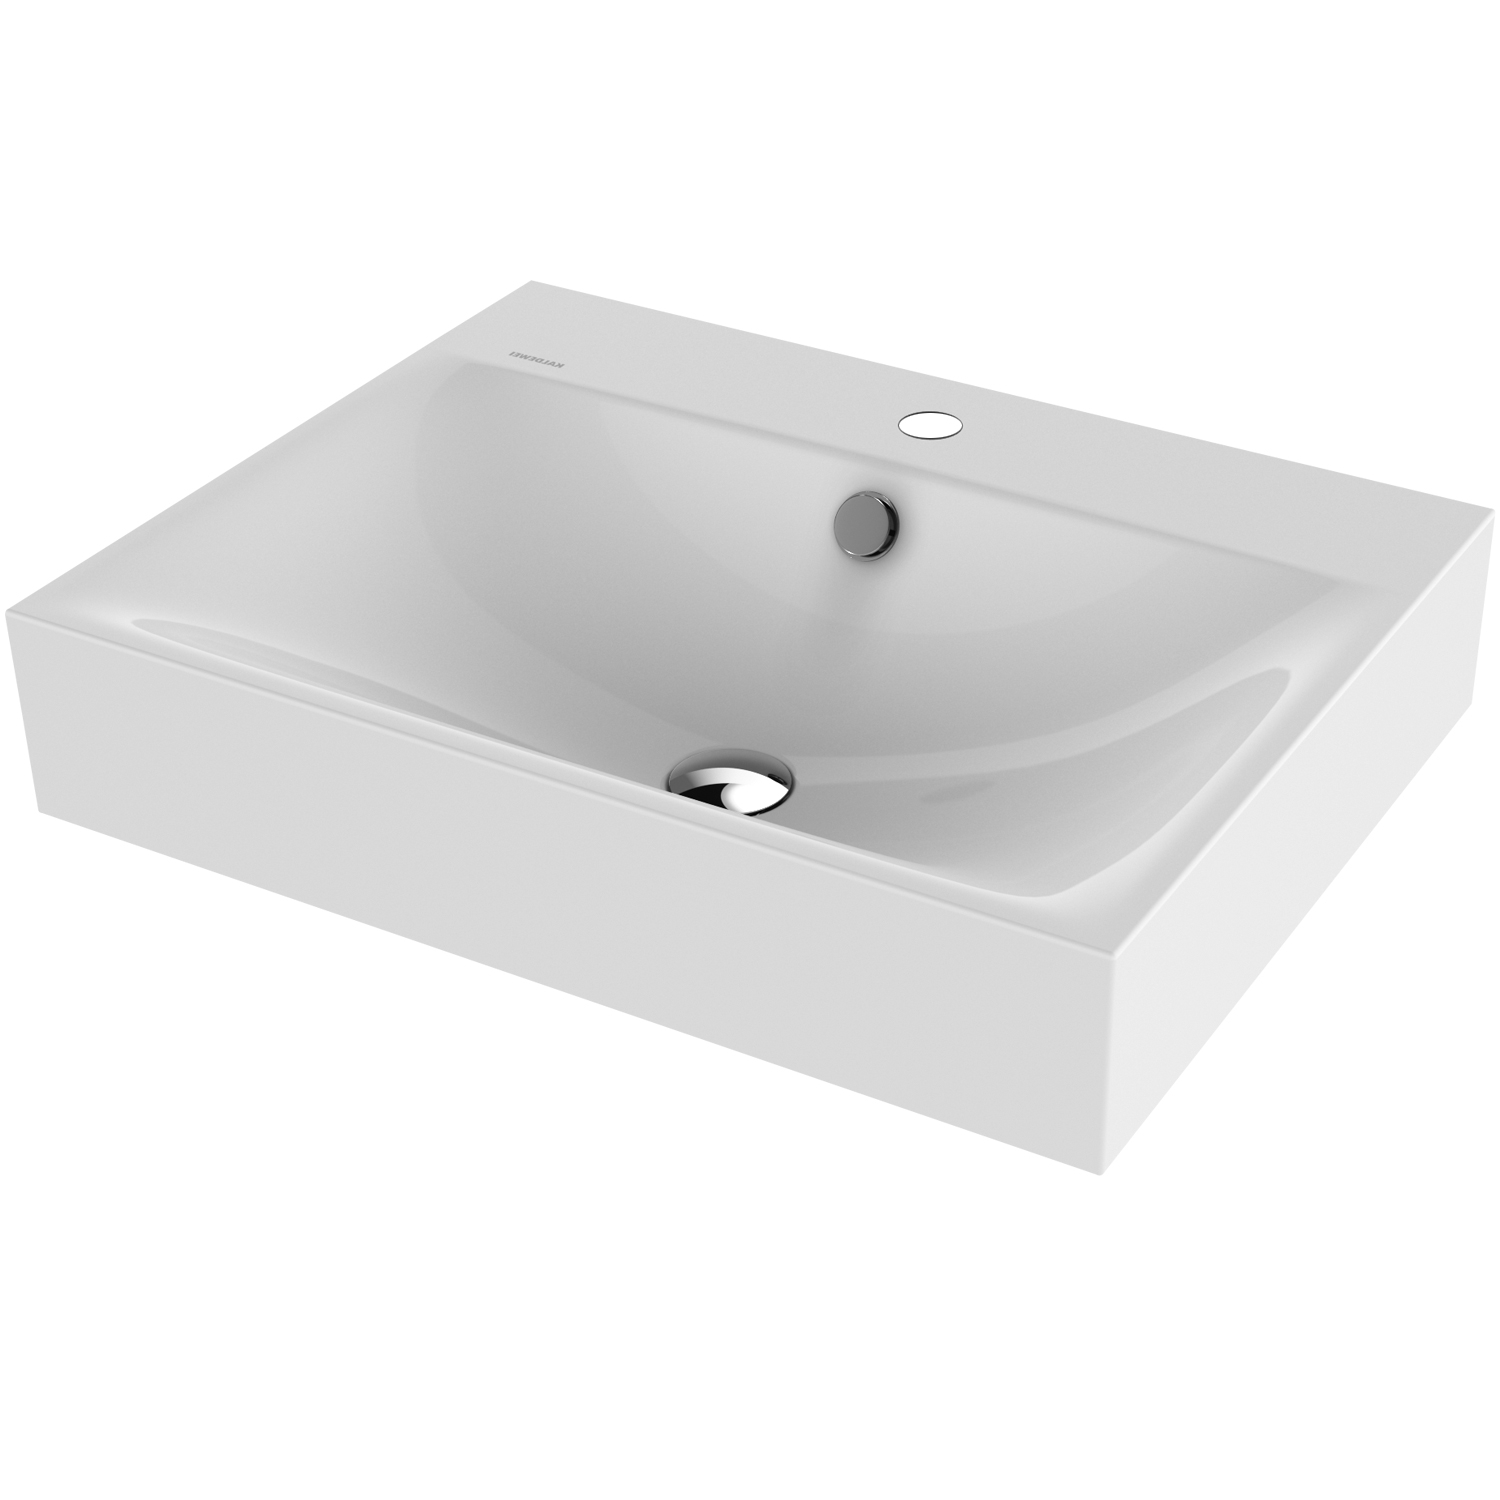 Kaldewei Silenio Wall Hung Basin 600mm Wide - 1 Tap Hole